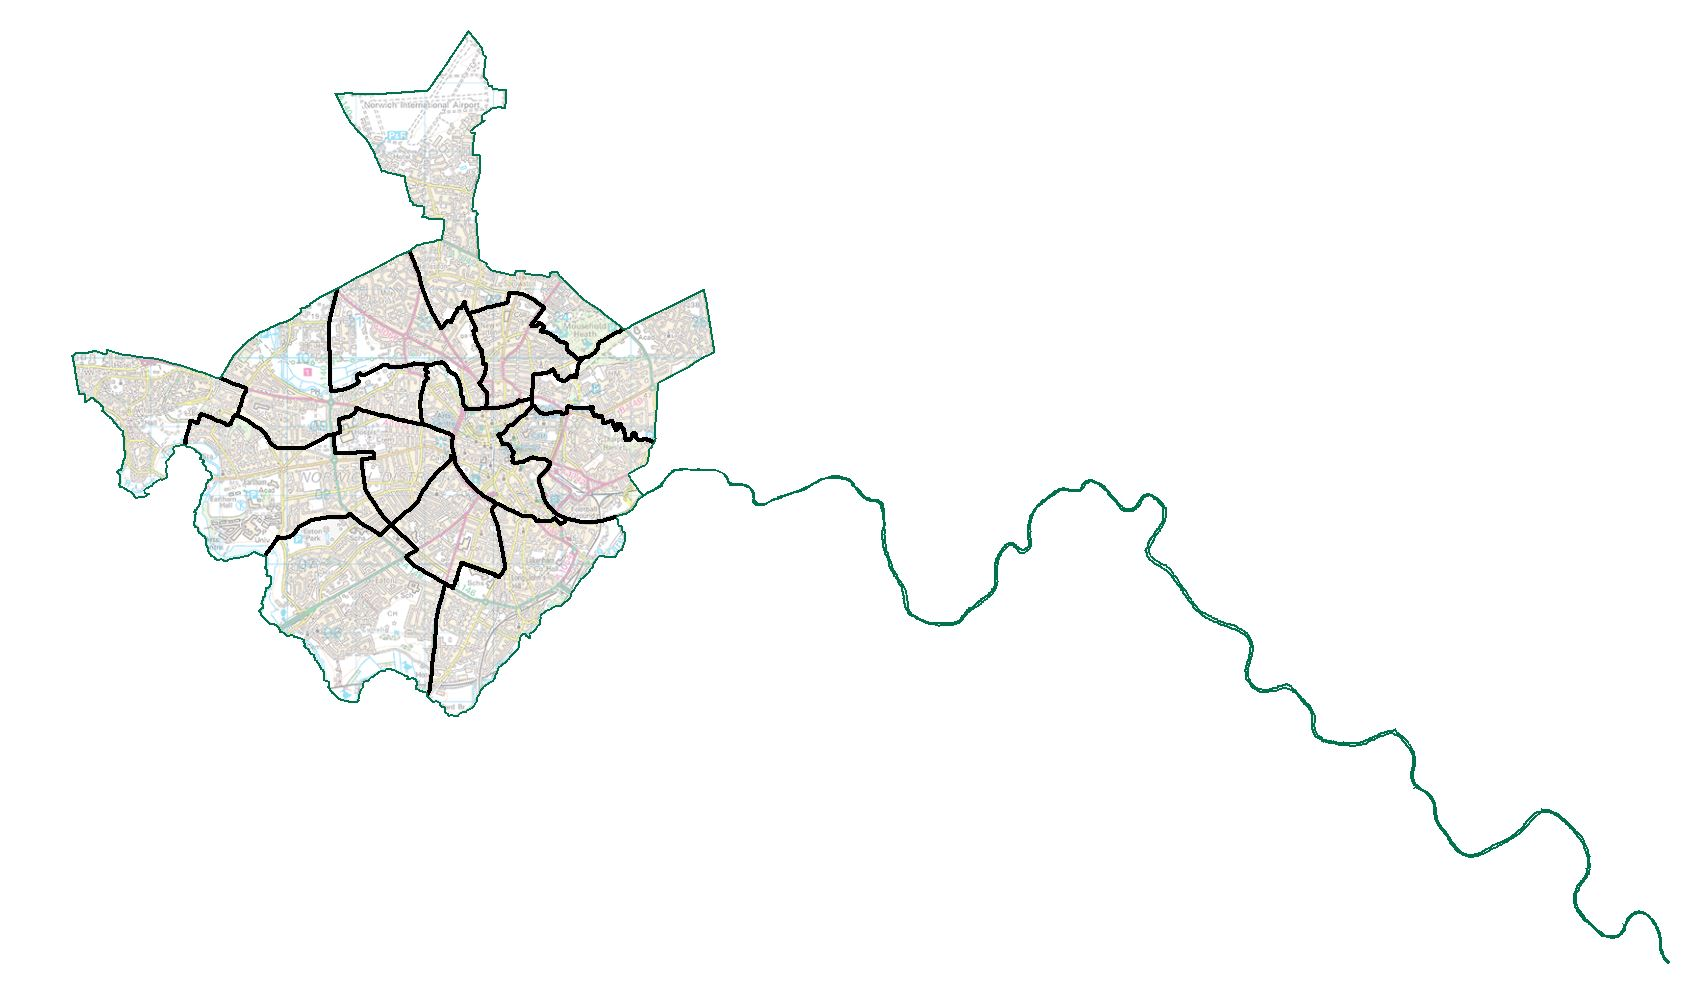 Draft recommendations map for Norwich